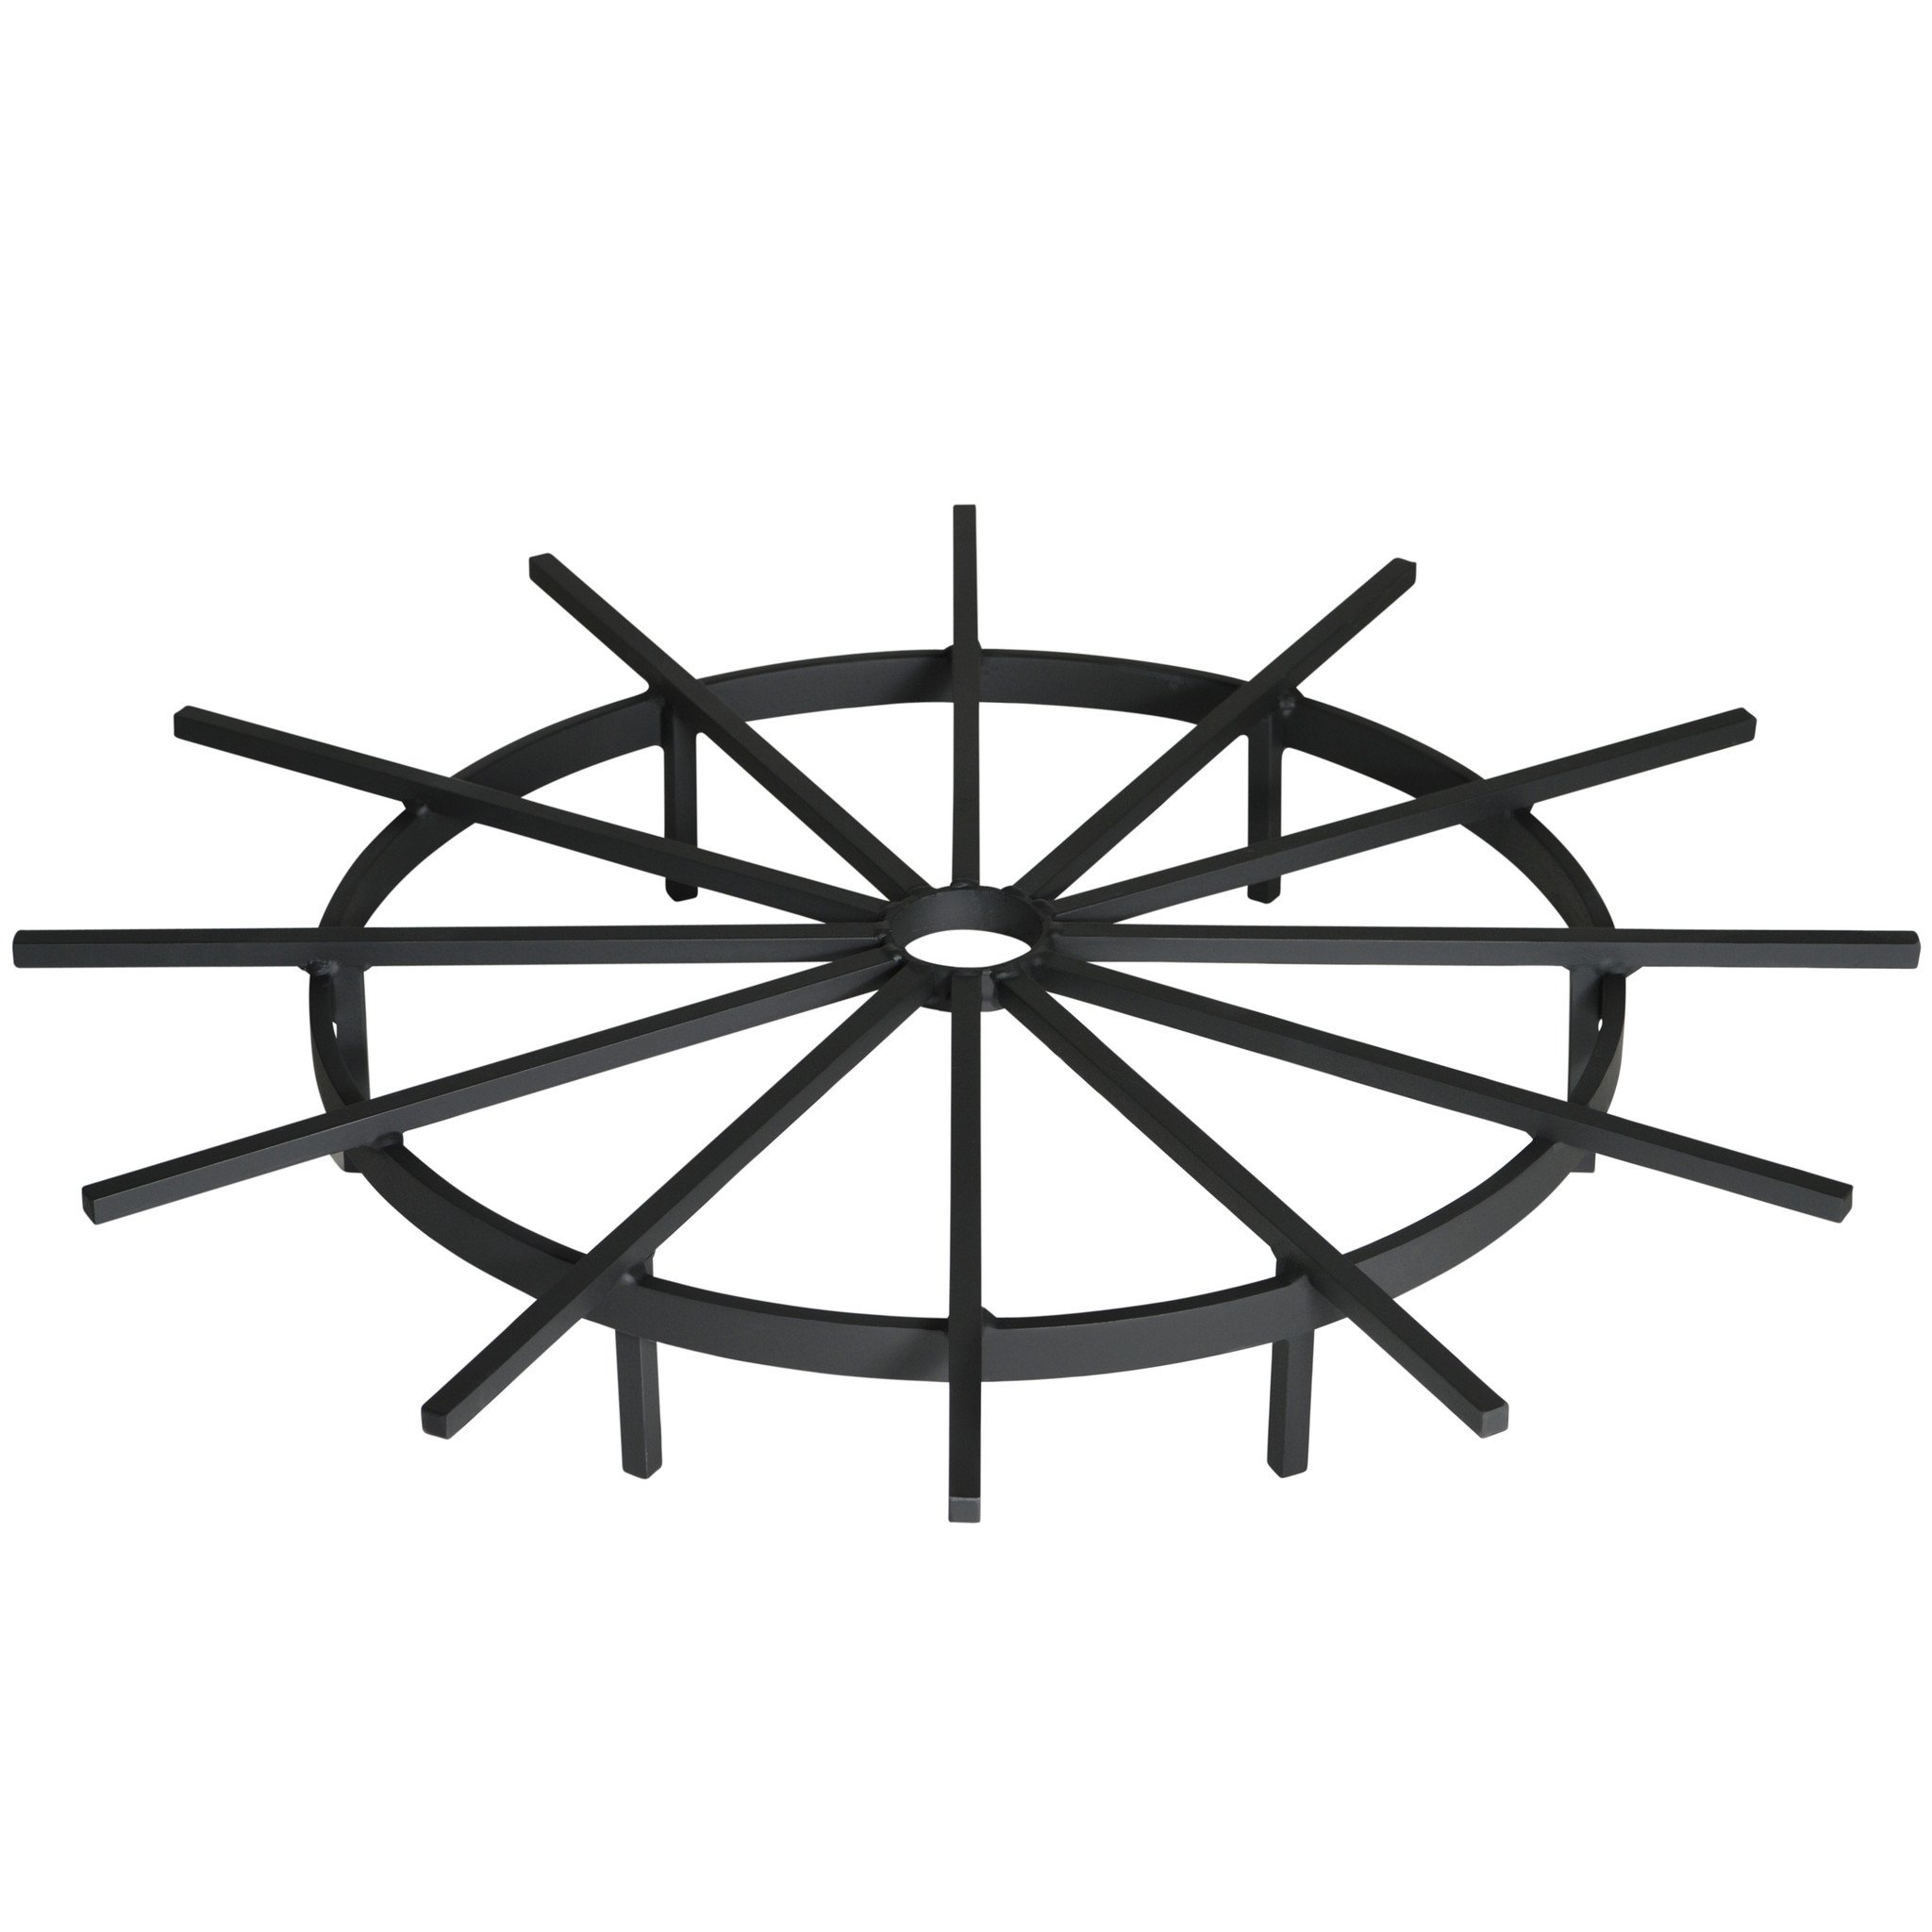 Heritage Products 28 Inch Ship's Wheel Fire Pit Grate - Made in the USA